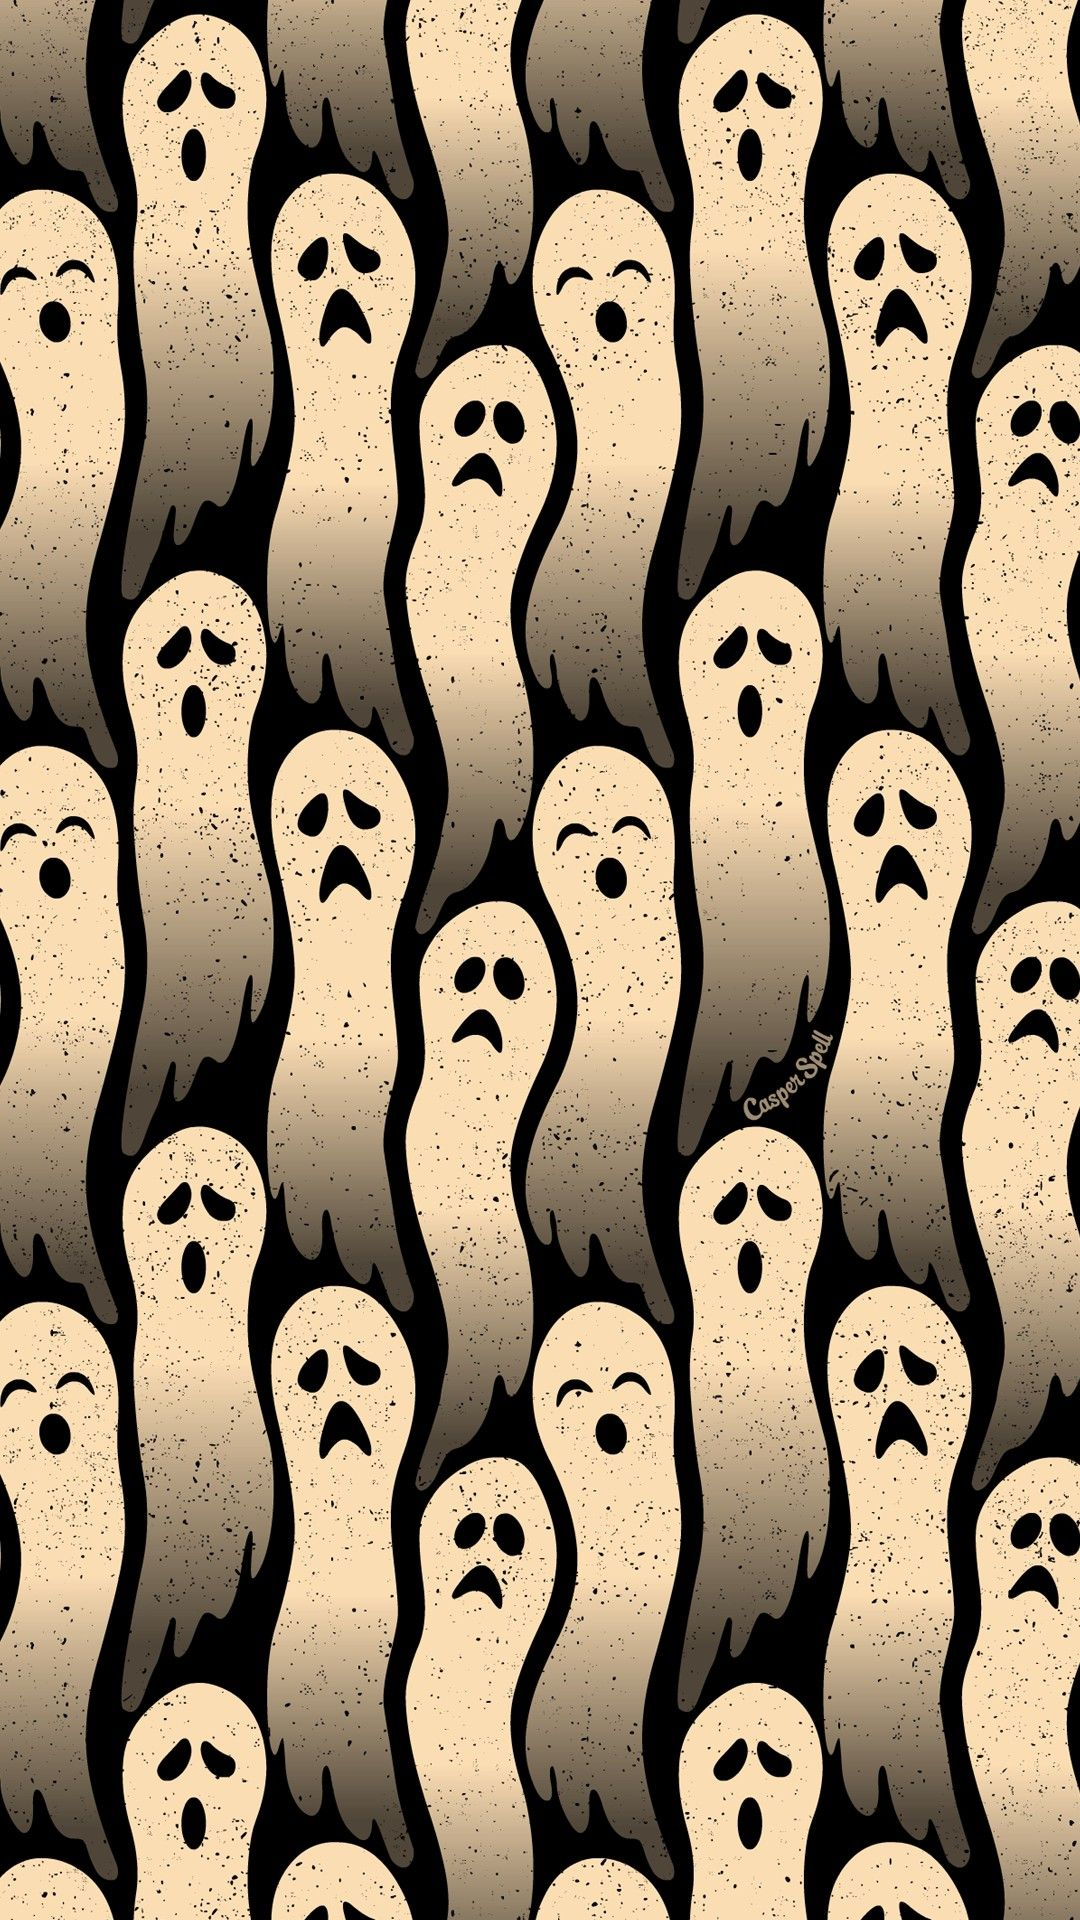 Ghosts repeat pattern halloween background wallpaper